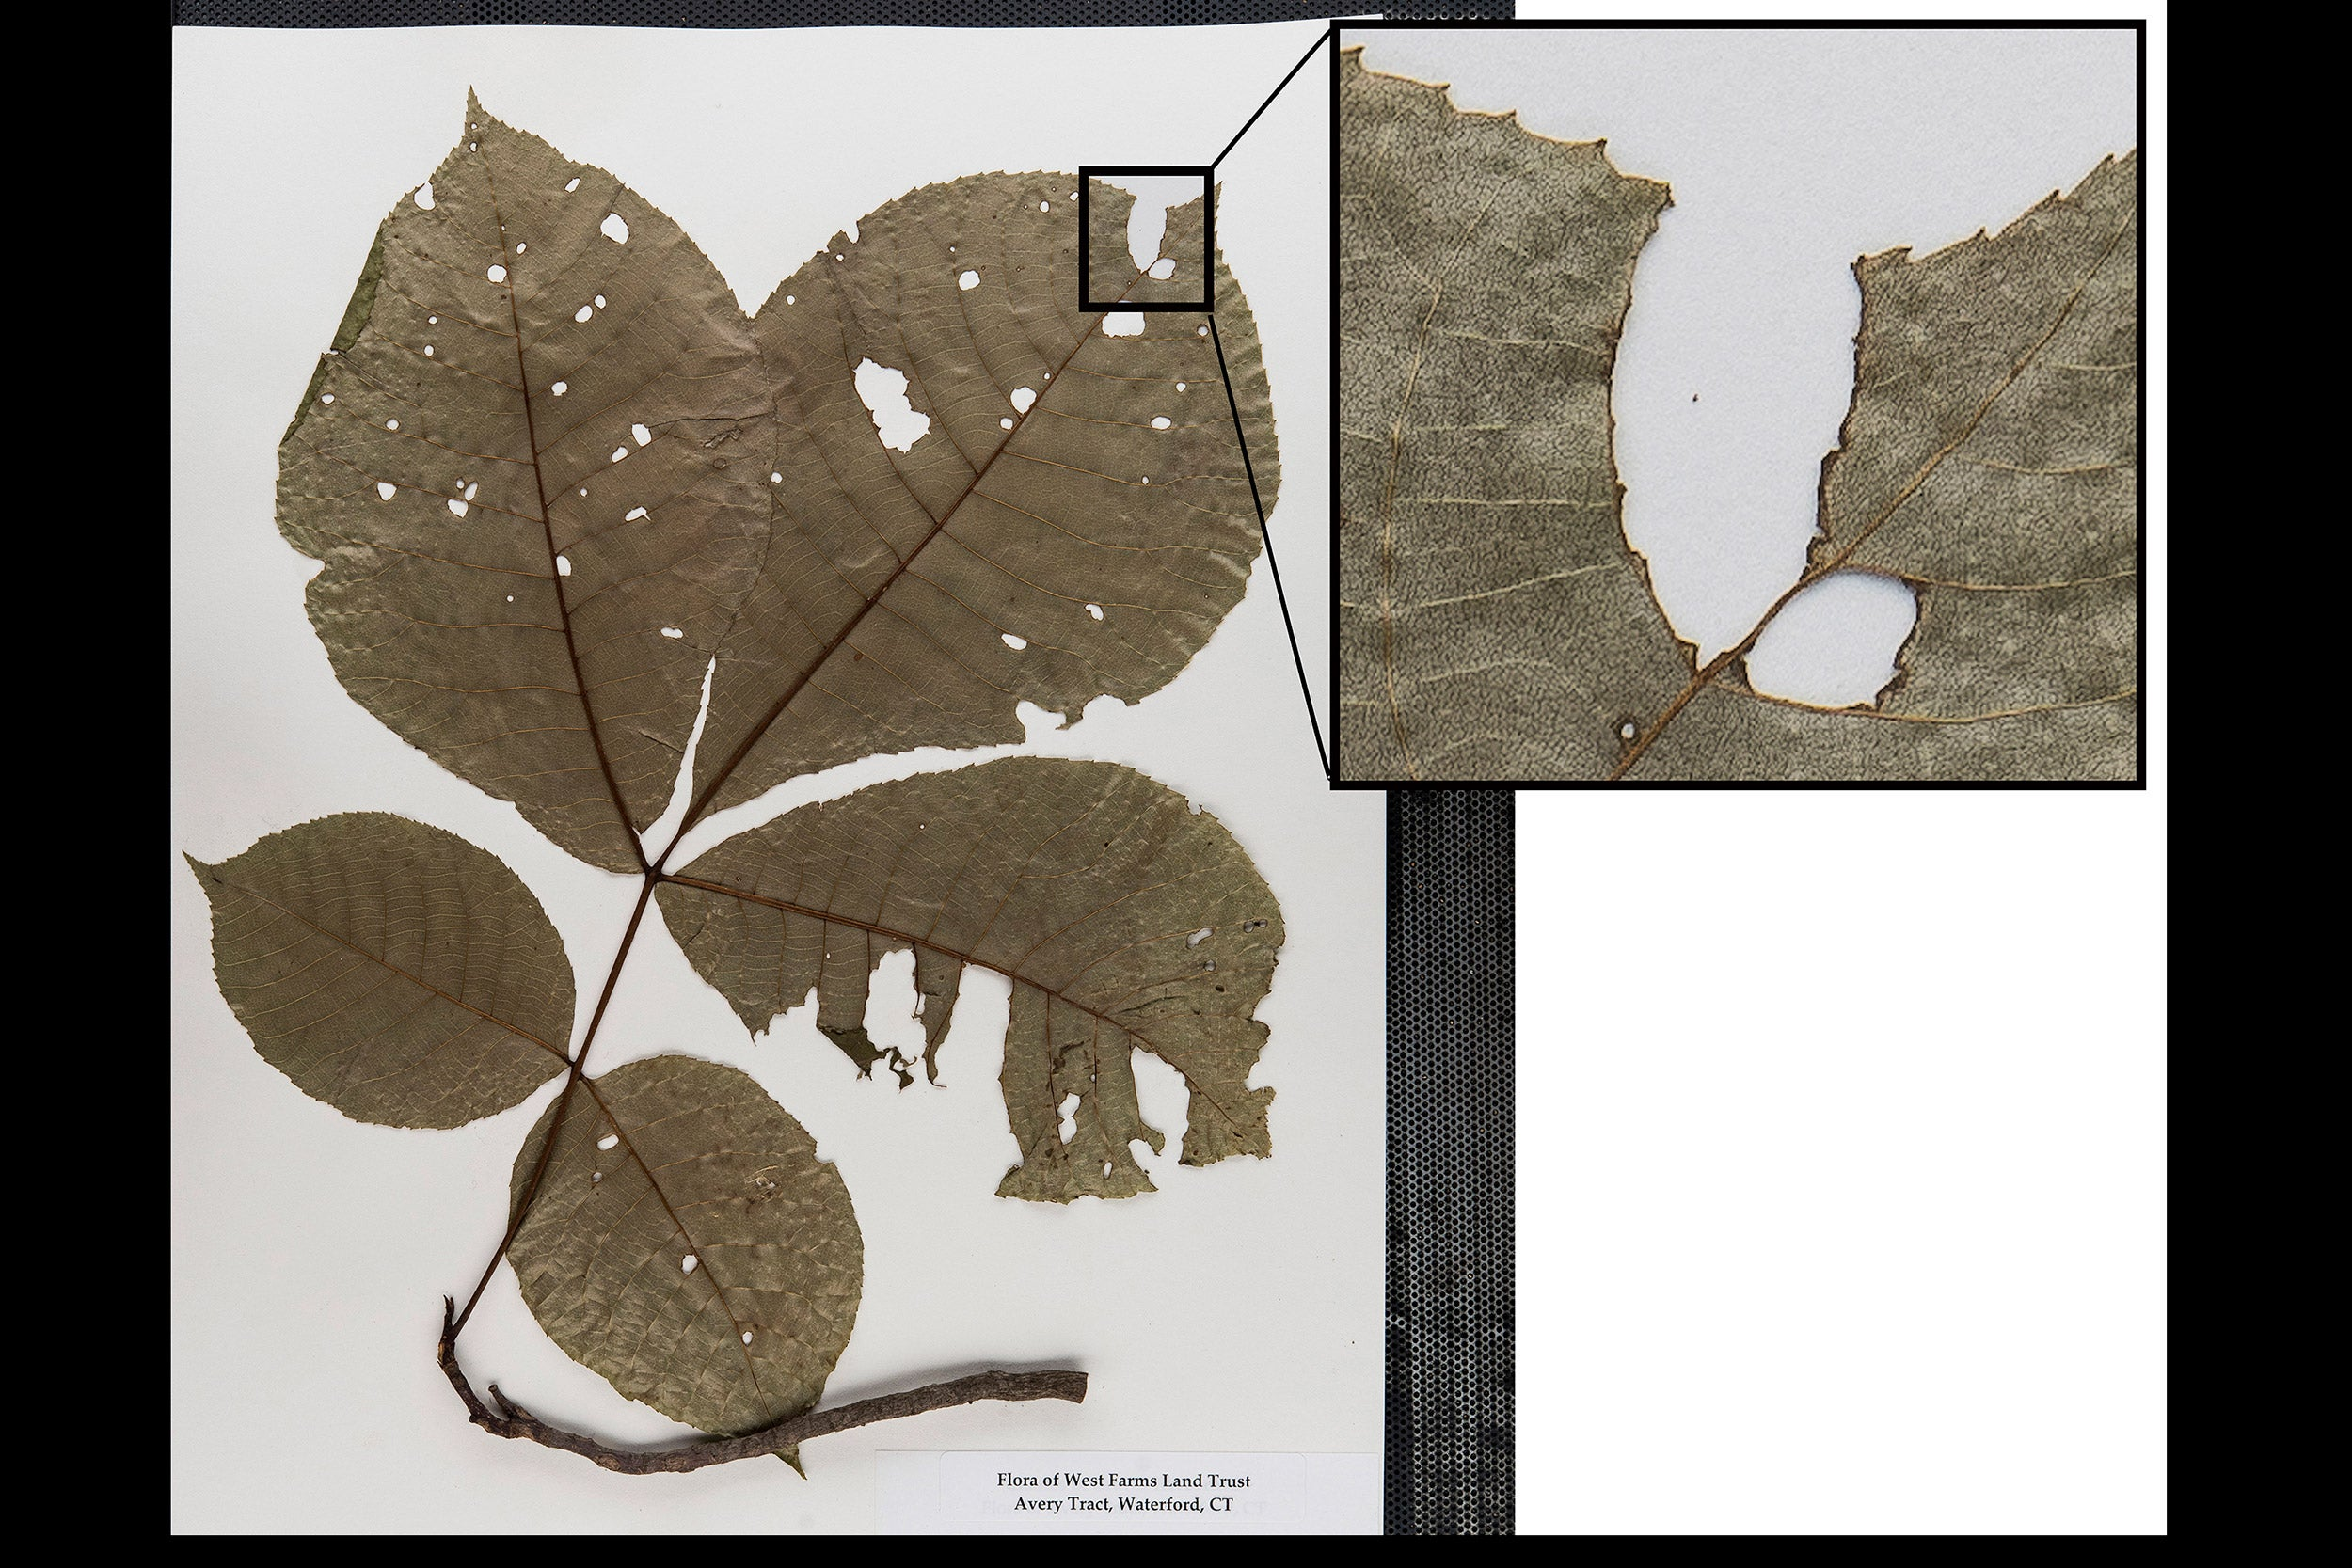 Herbarium specimen with insect damage.